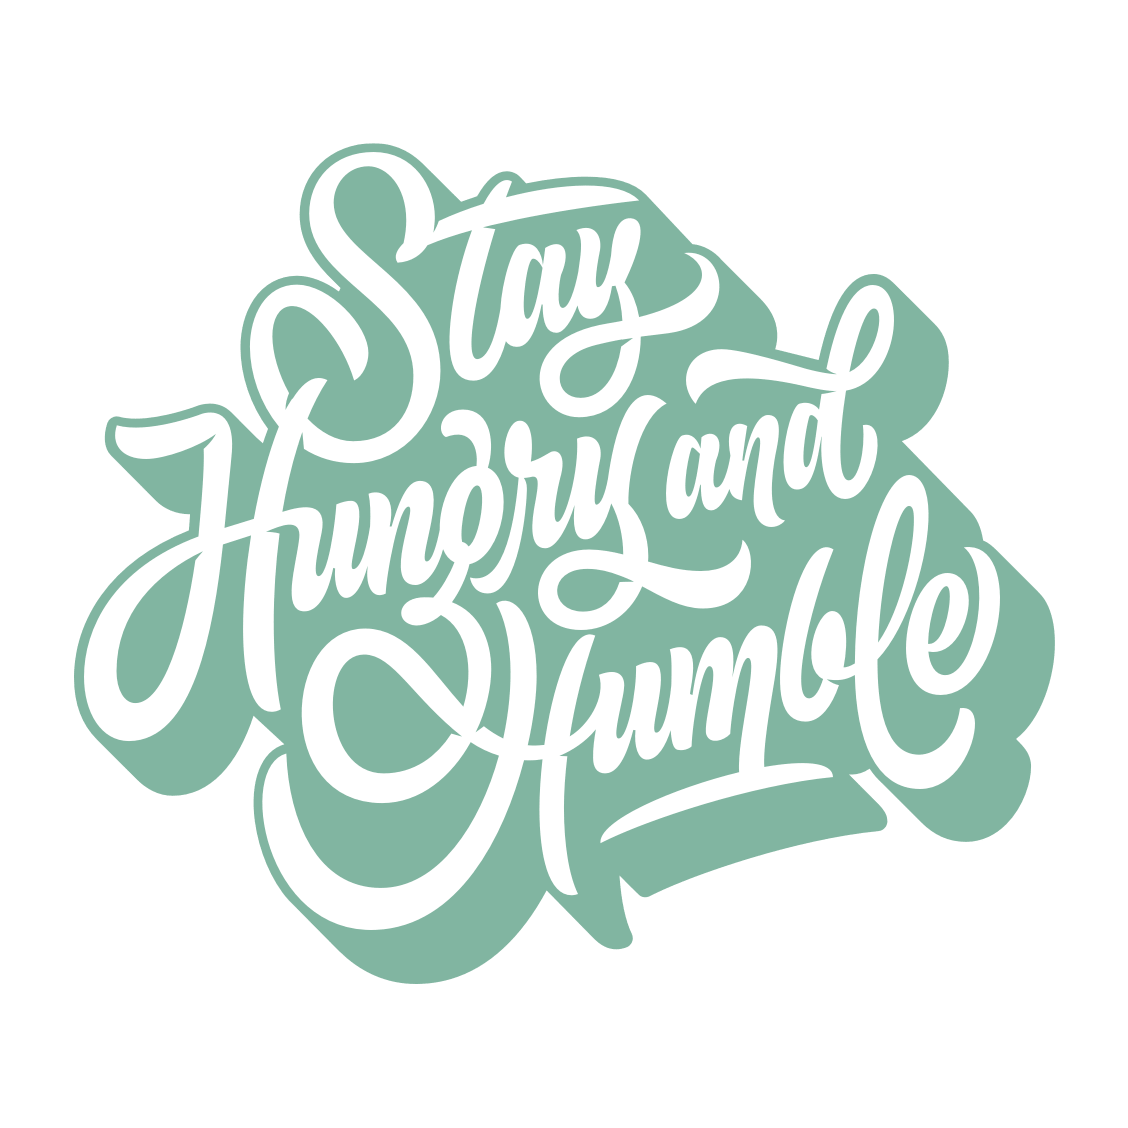 Be hungry, stay humble